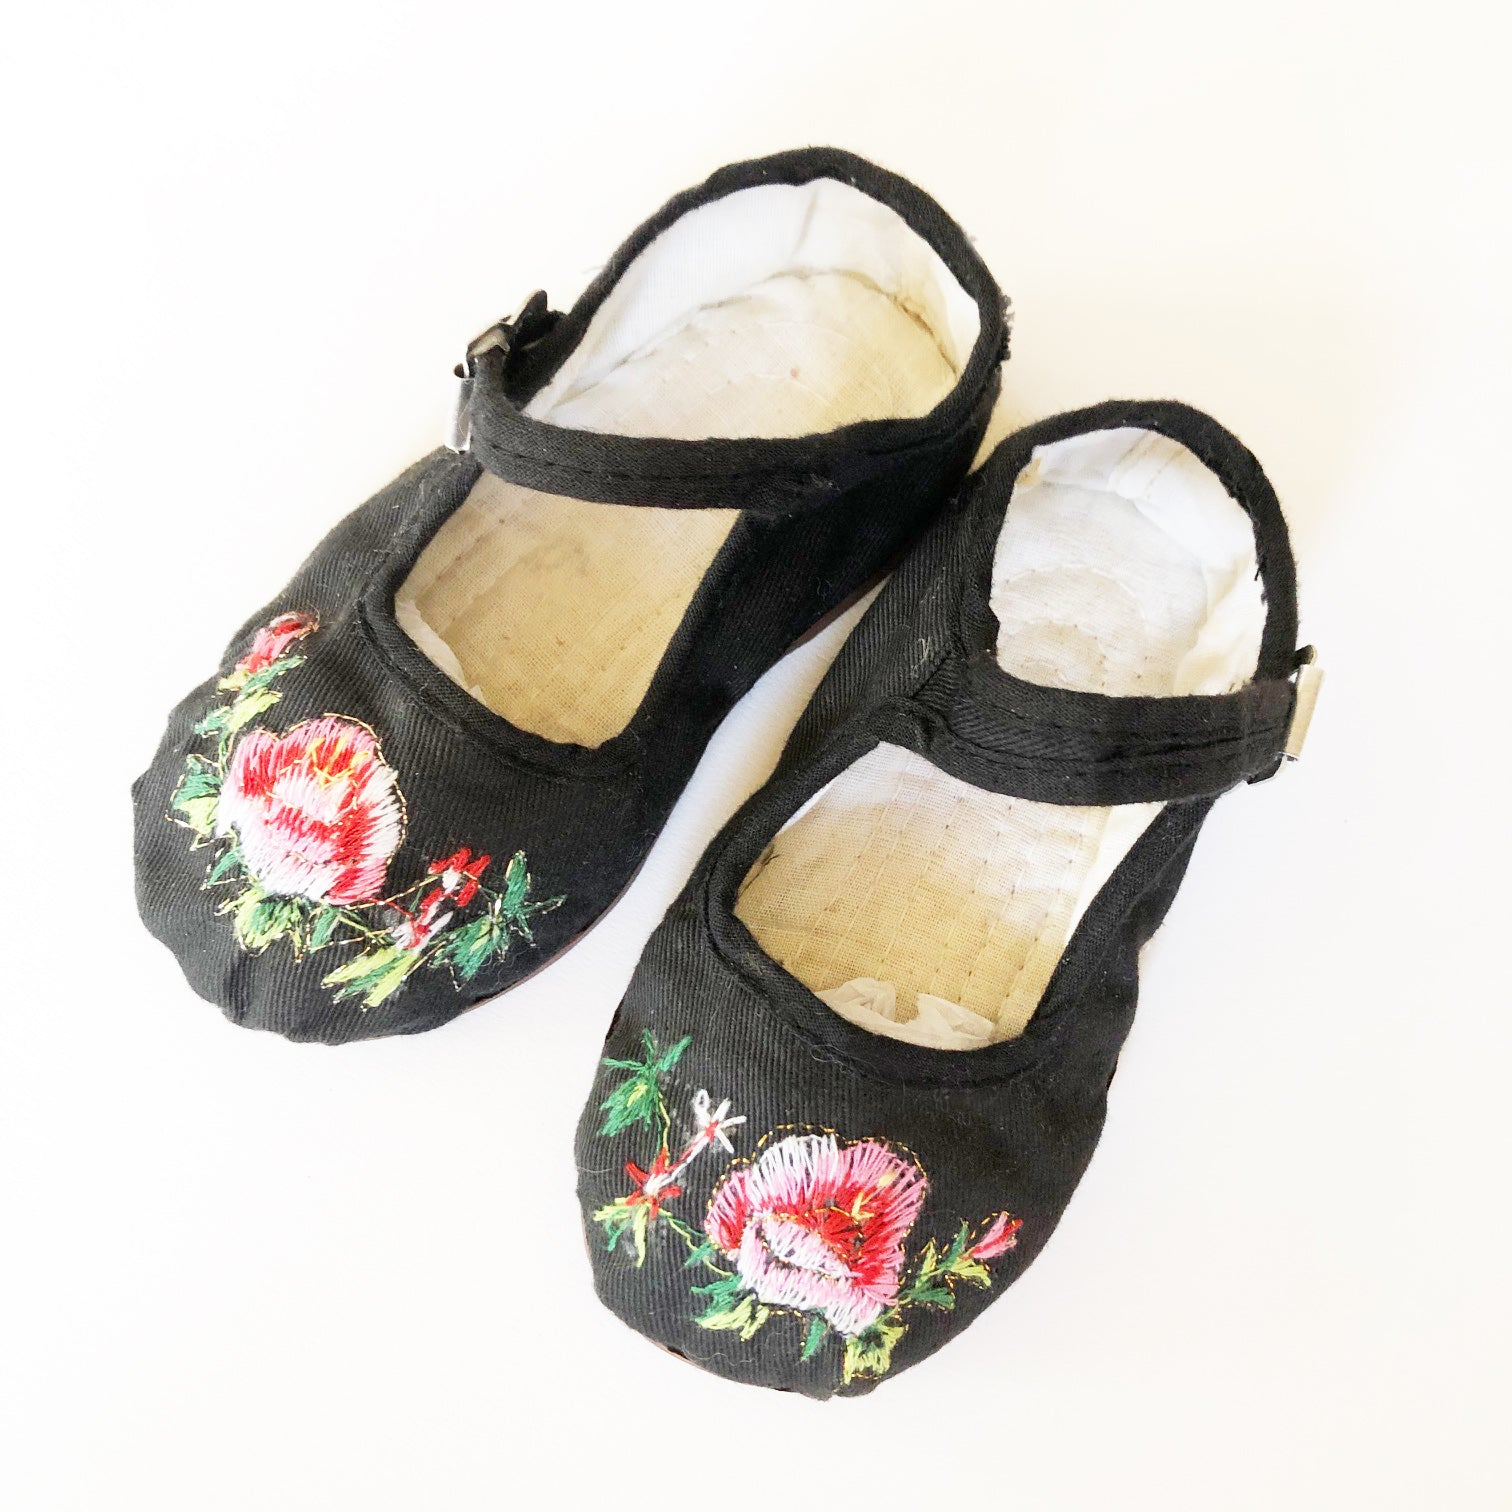 Vintage Cheongsam Little Embroidered shoes size 2-3